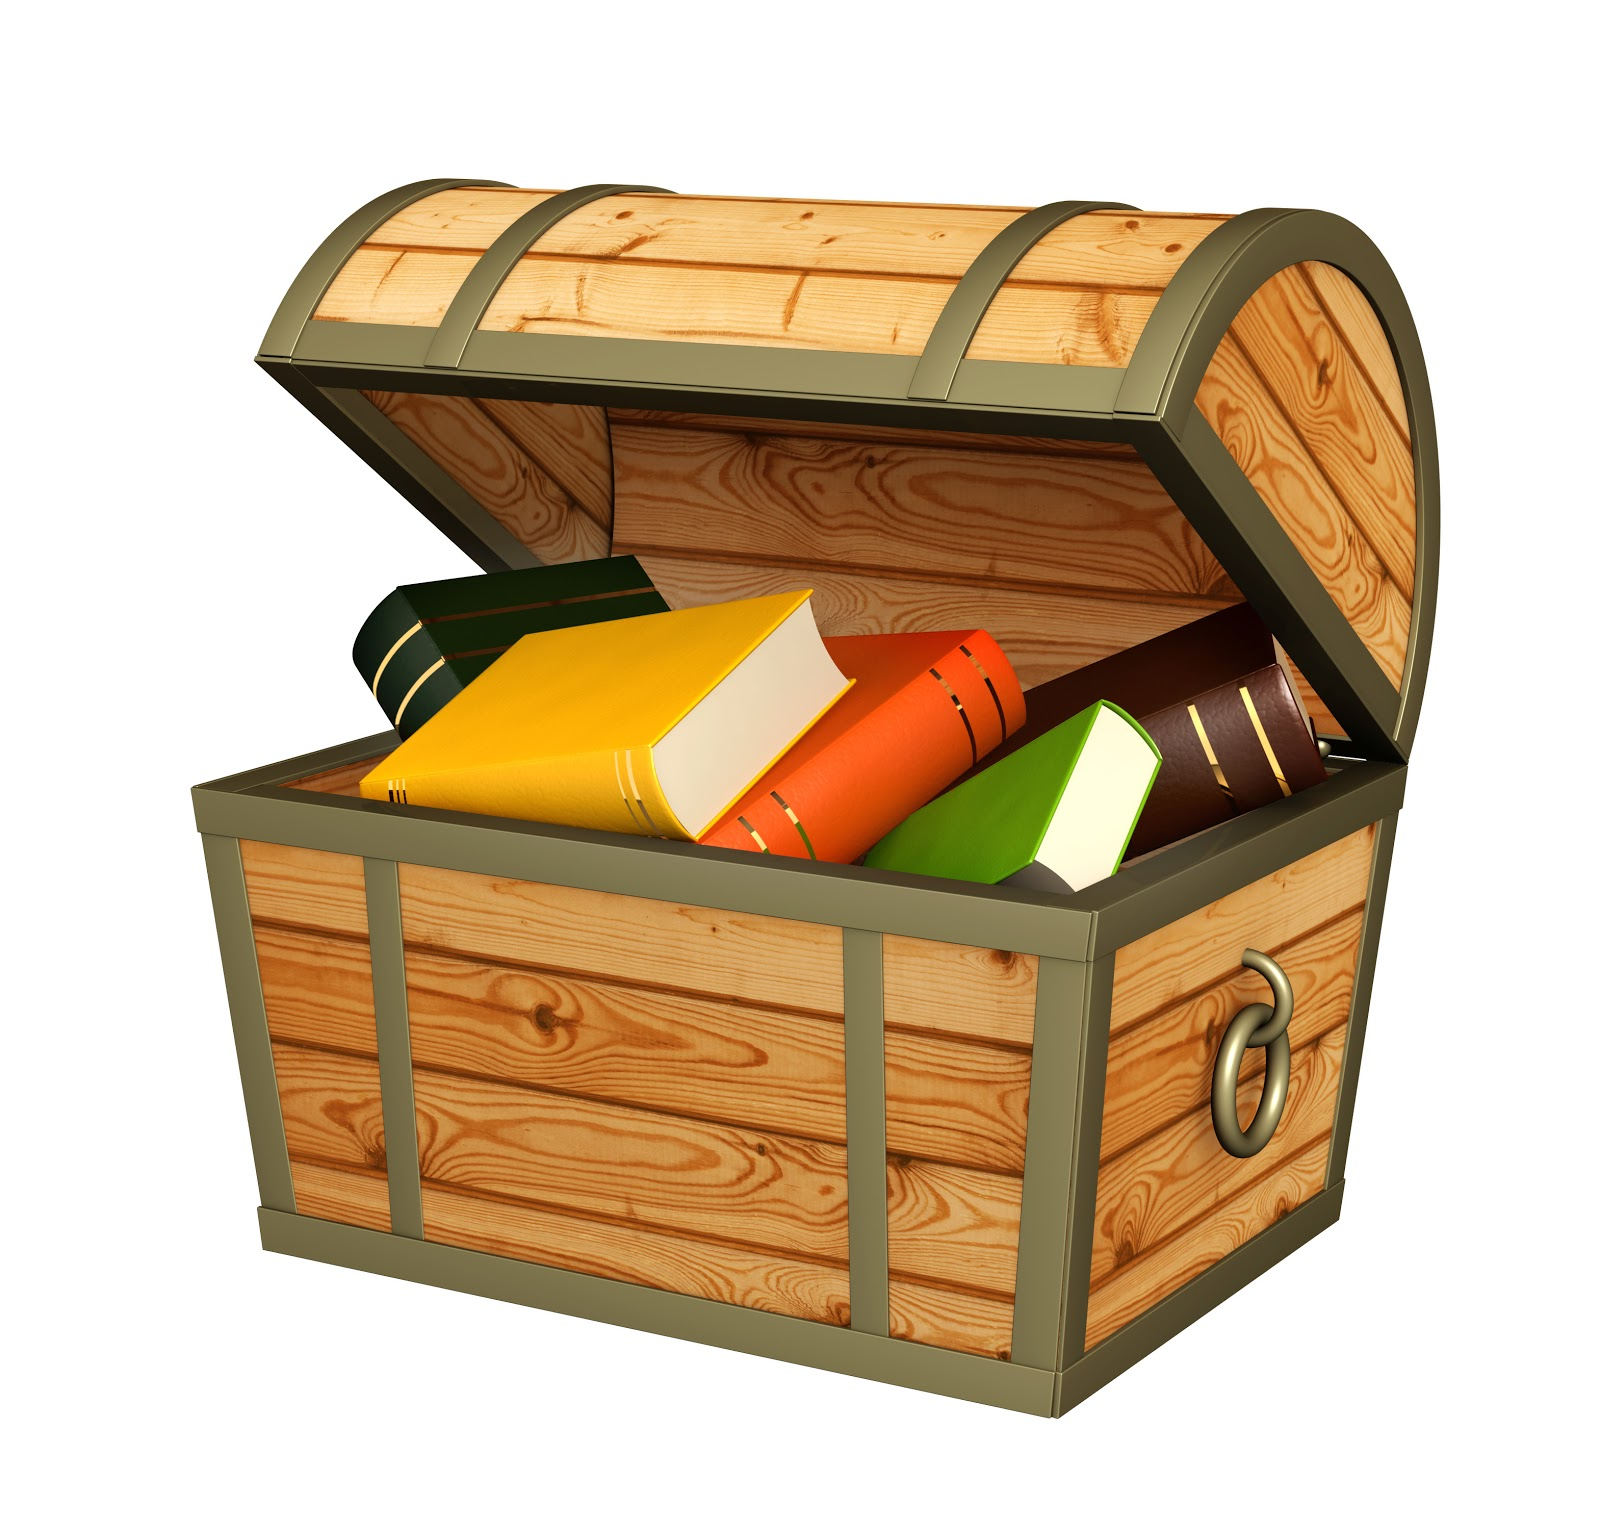 Book Treasure Chest AdobeStock 25299729